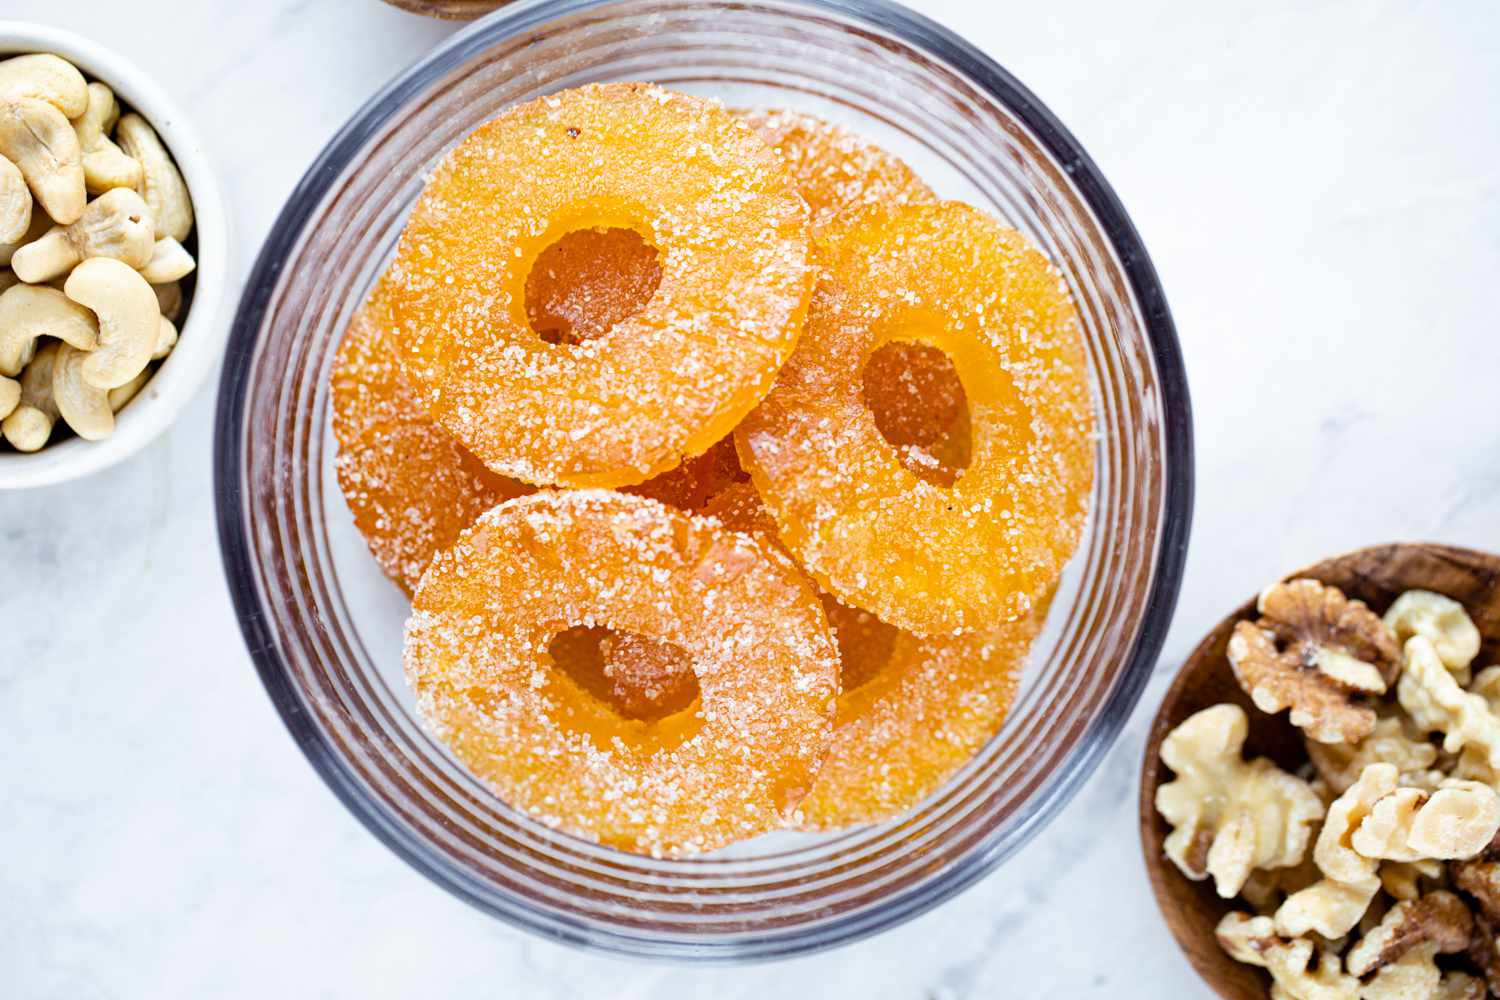 Candied Pineapple in a bowl